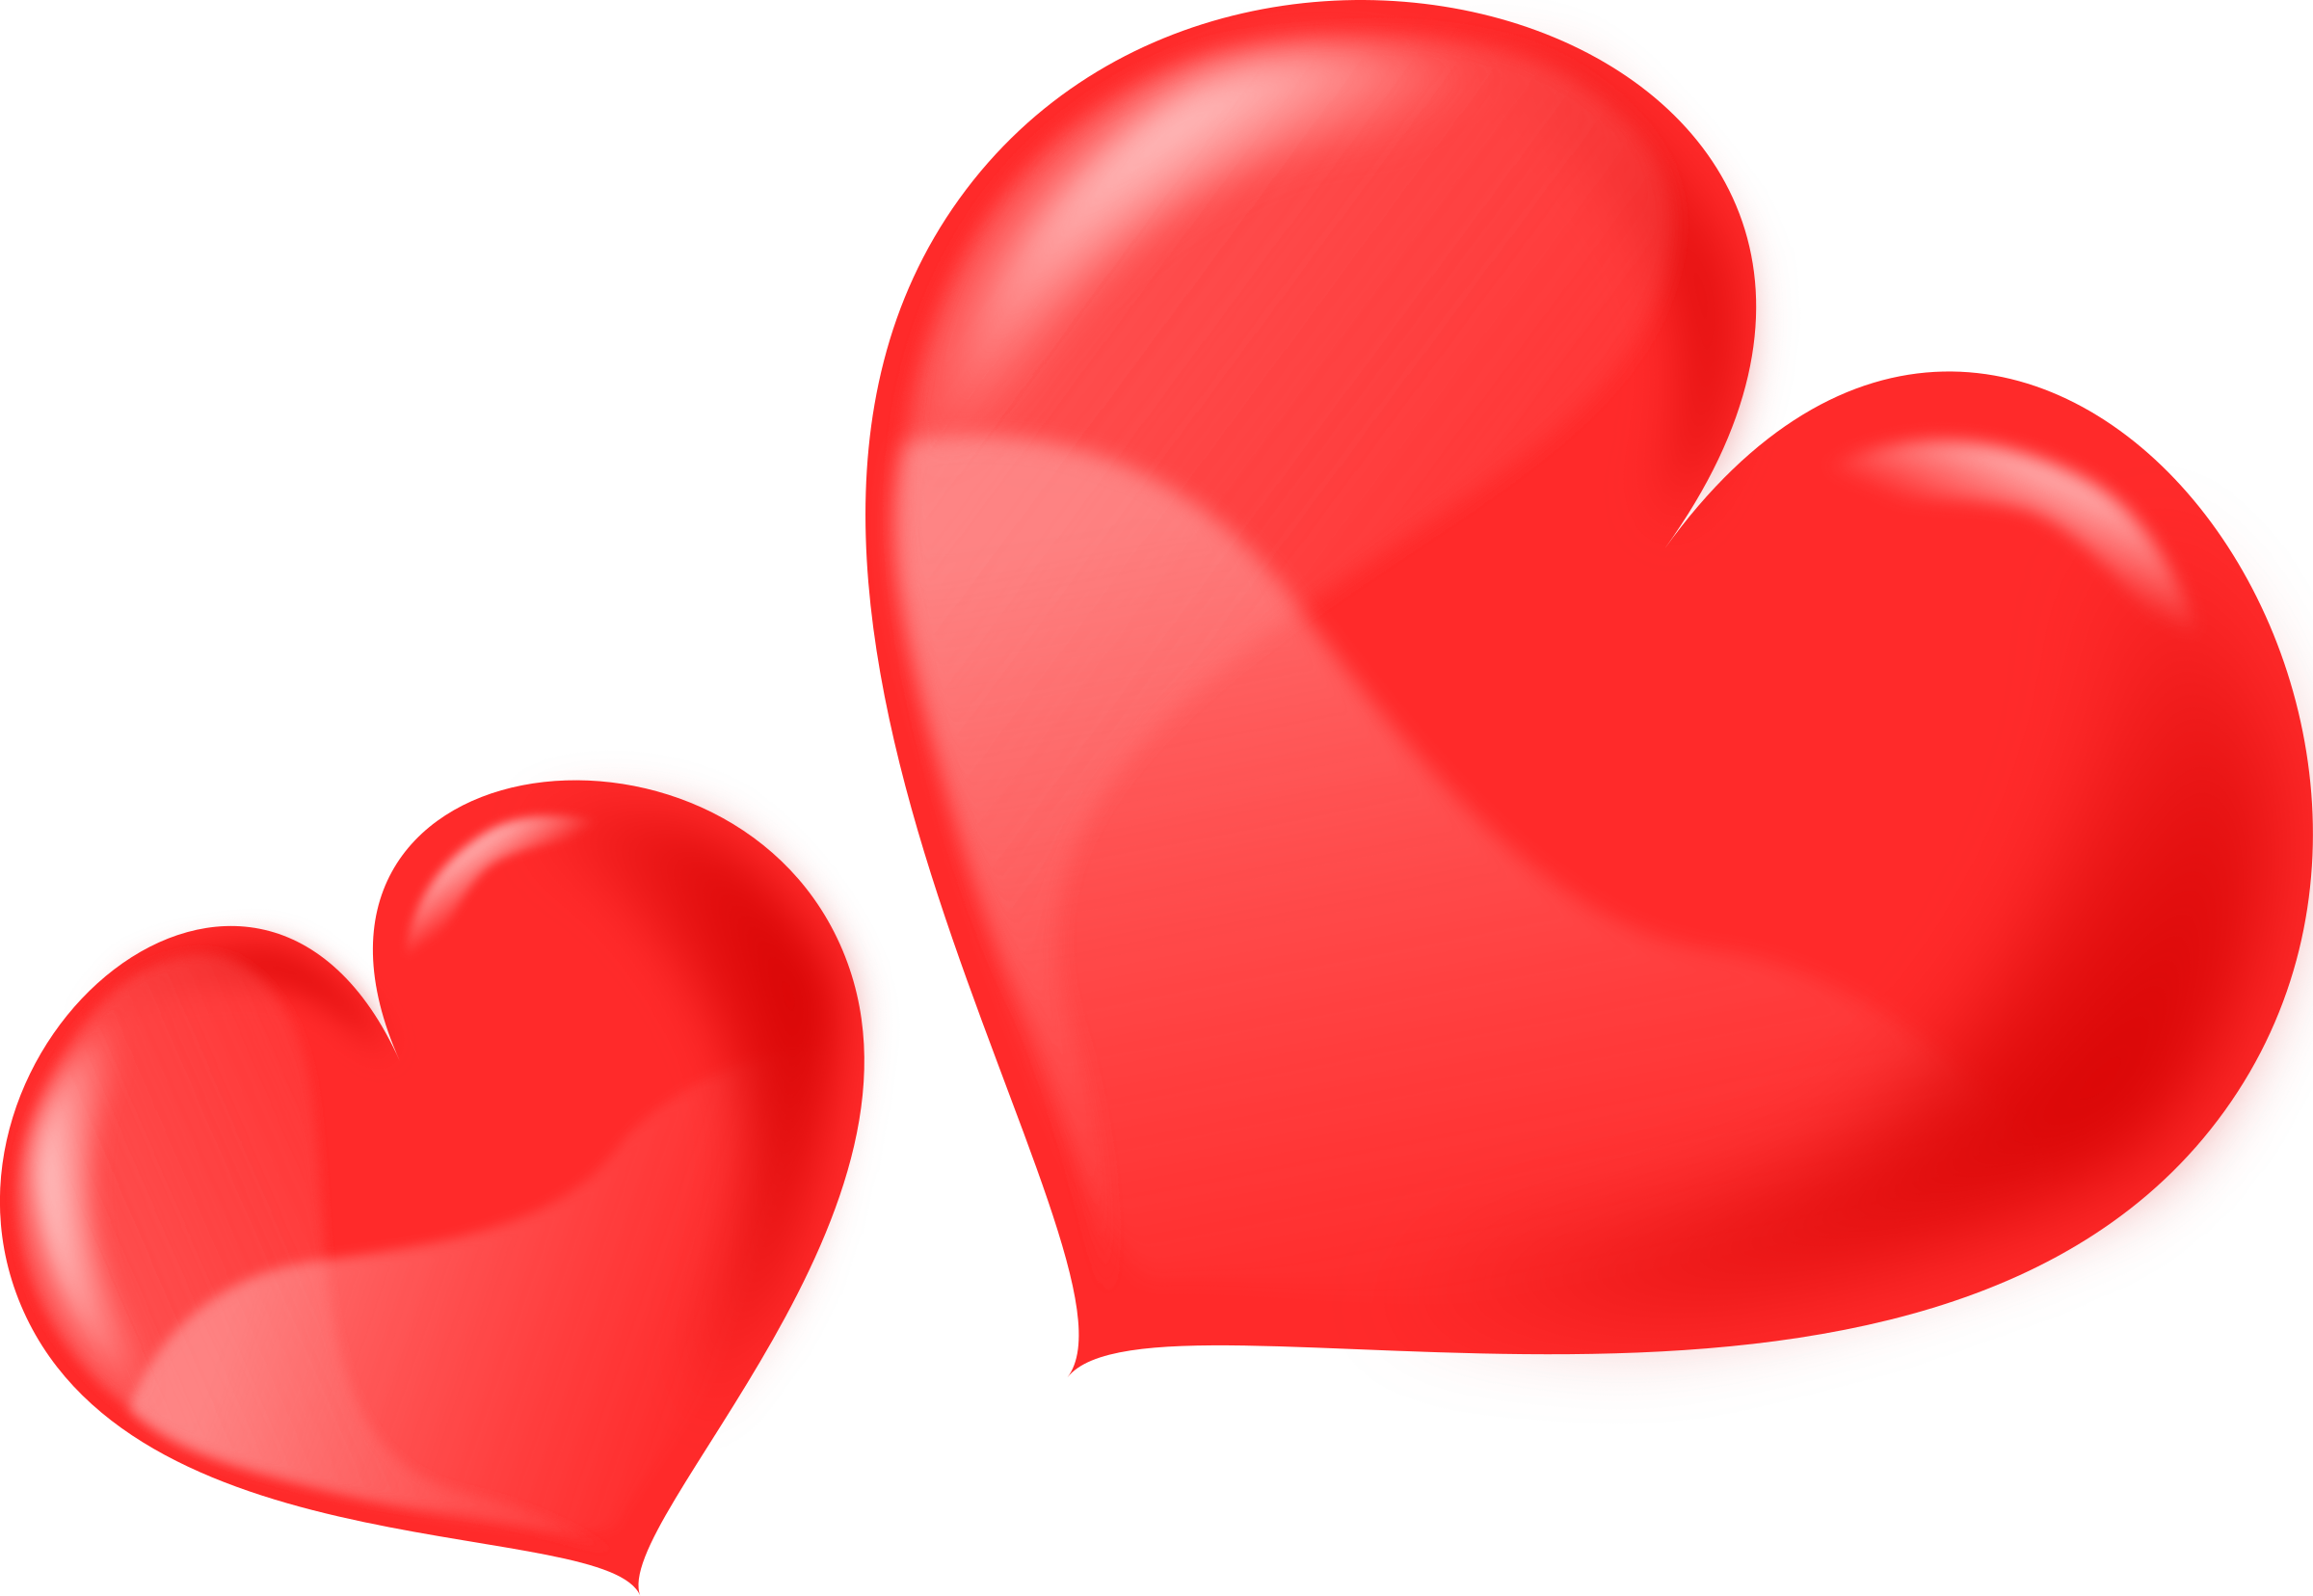 Love vector png. Heart glossy two icons